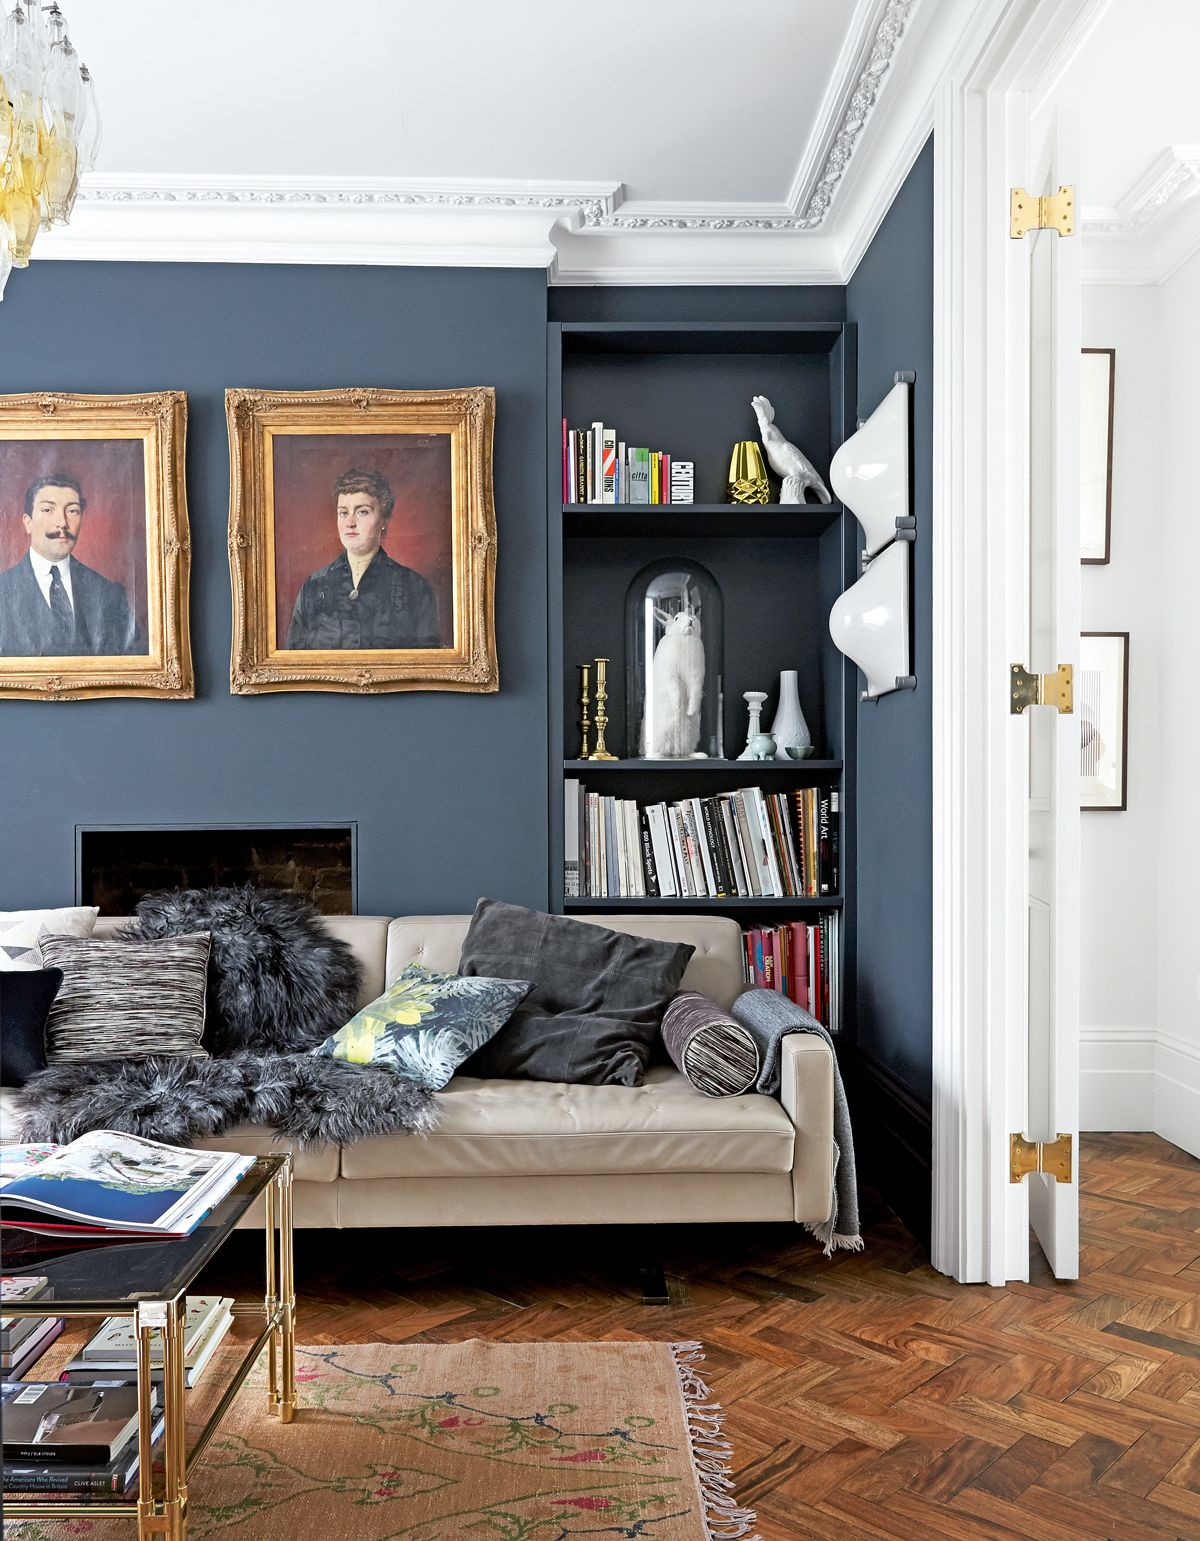 Livingetc house tours live step inside beautiful houses in hackney also living rh pinterest